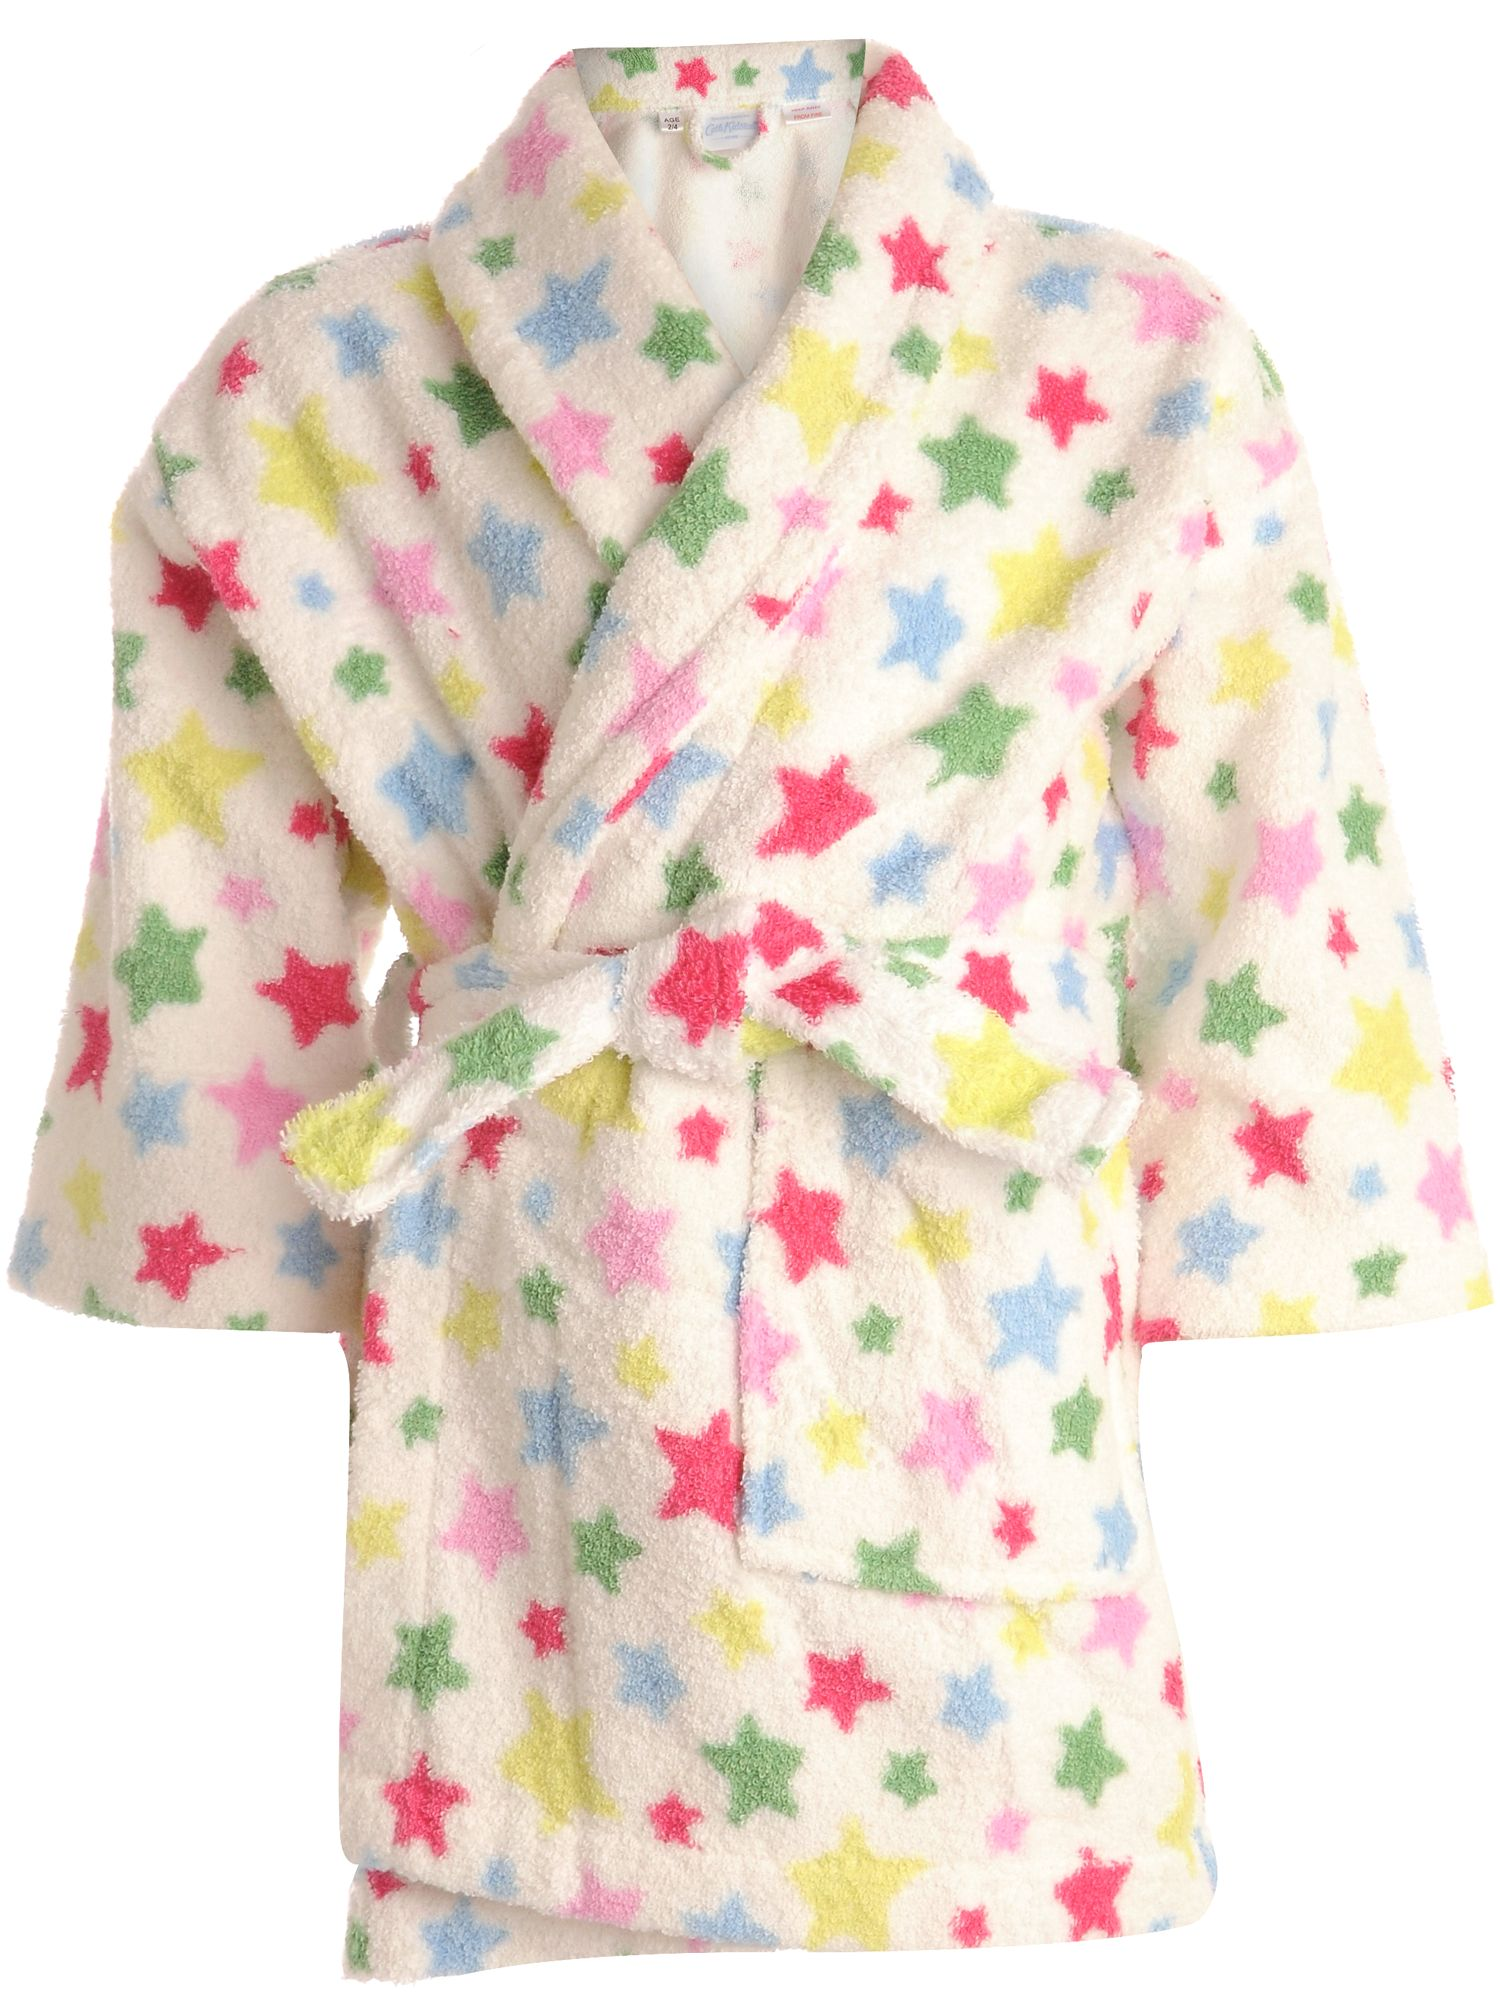 Shoot star kids bath robe